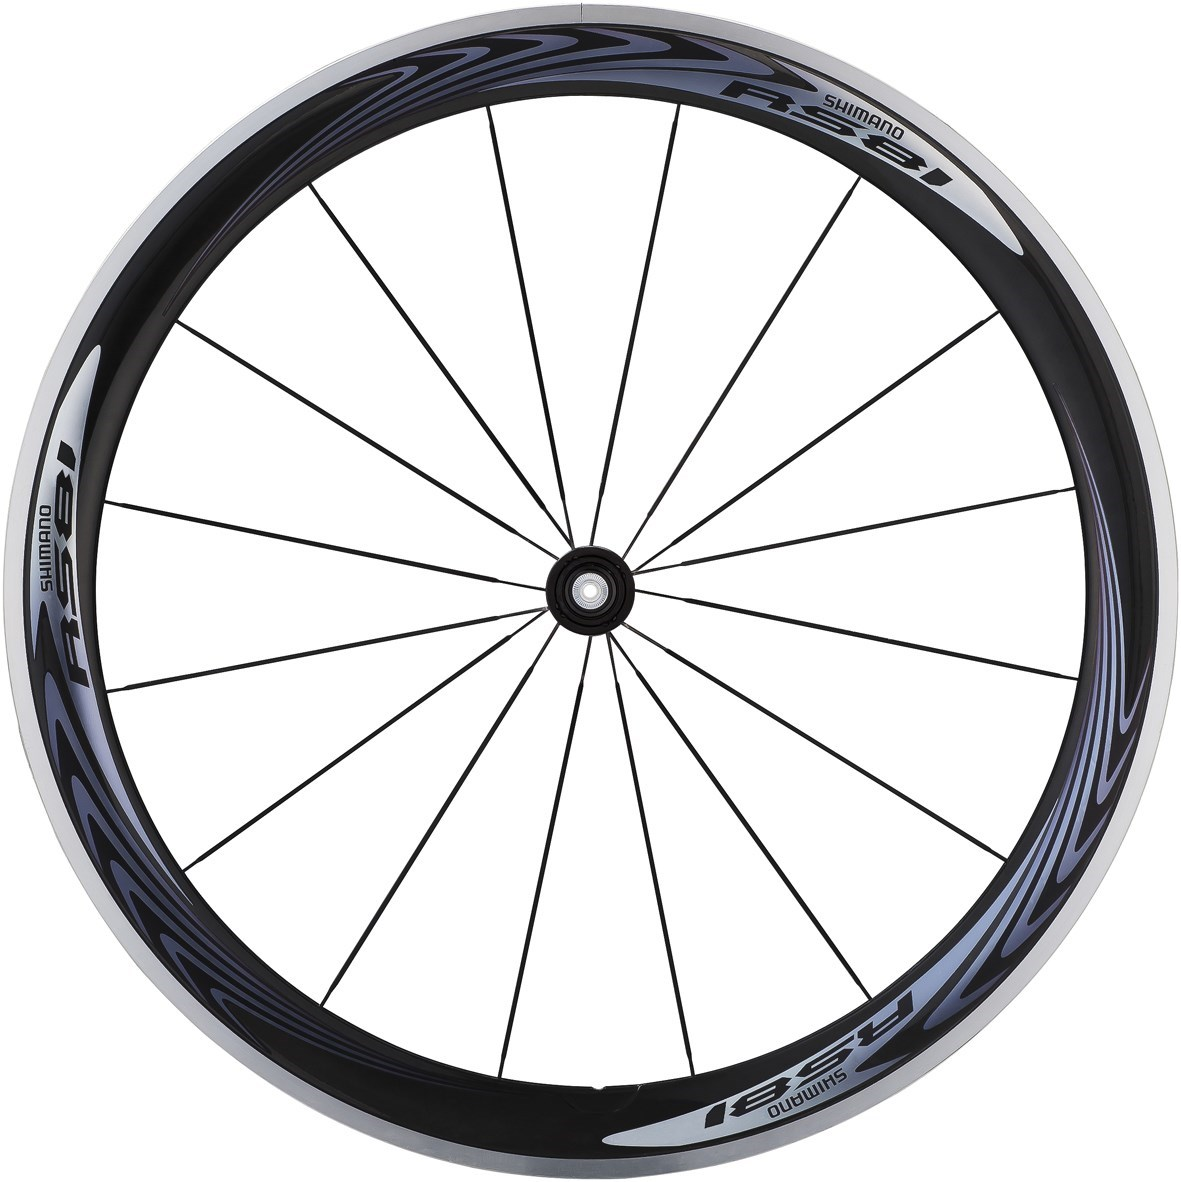 Shimano WH-RS81-C50-CL Wheel - Carbon Clincher 50 mm - Front